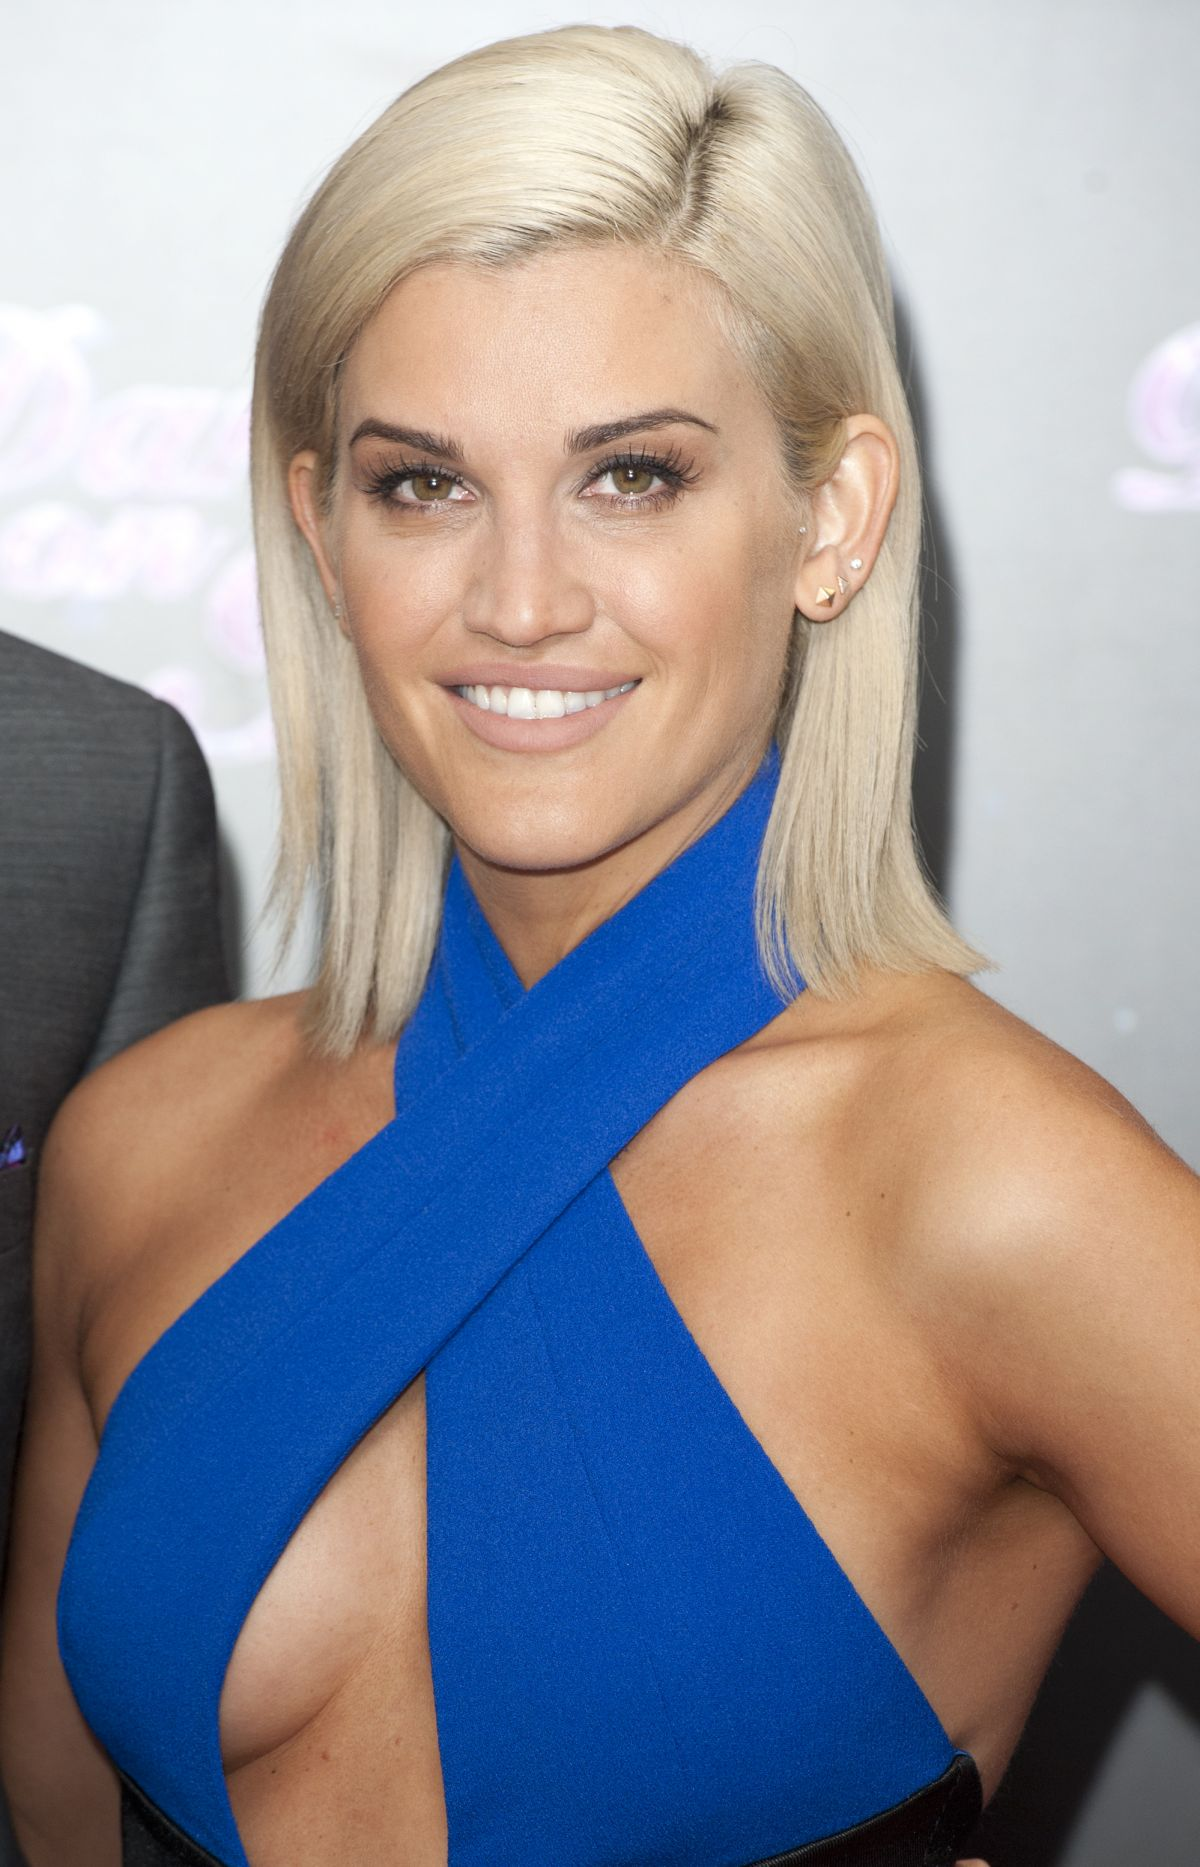 Ashley Roberts Ashley Roberts Archives Page 4 of 4 HawtCelebs